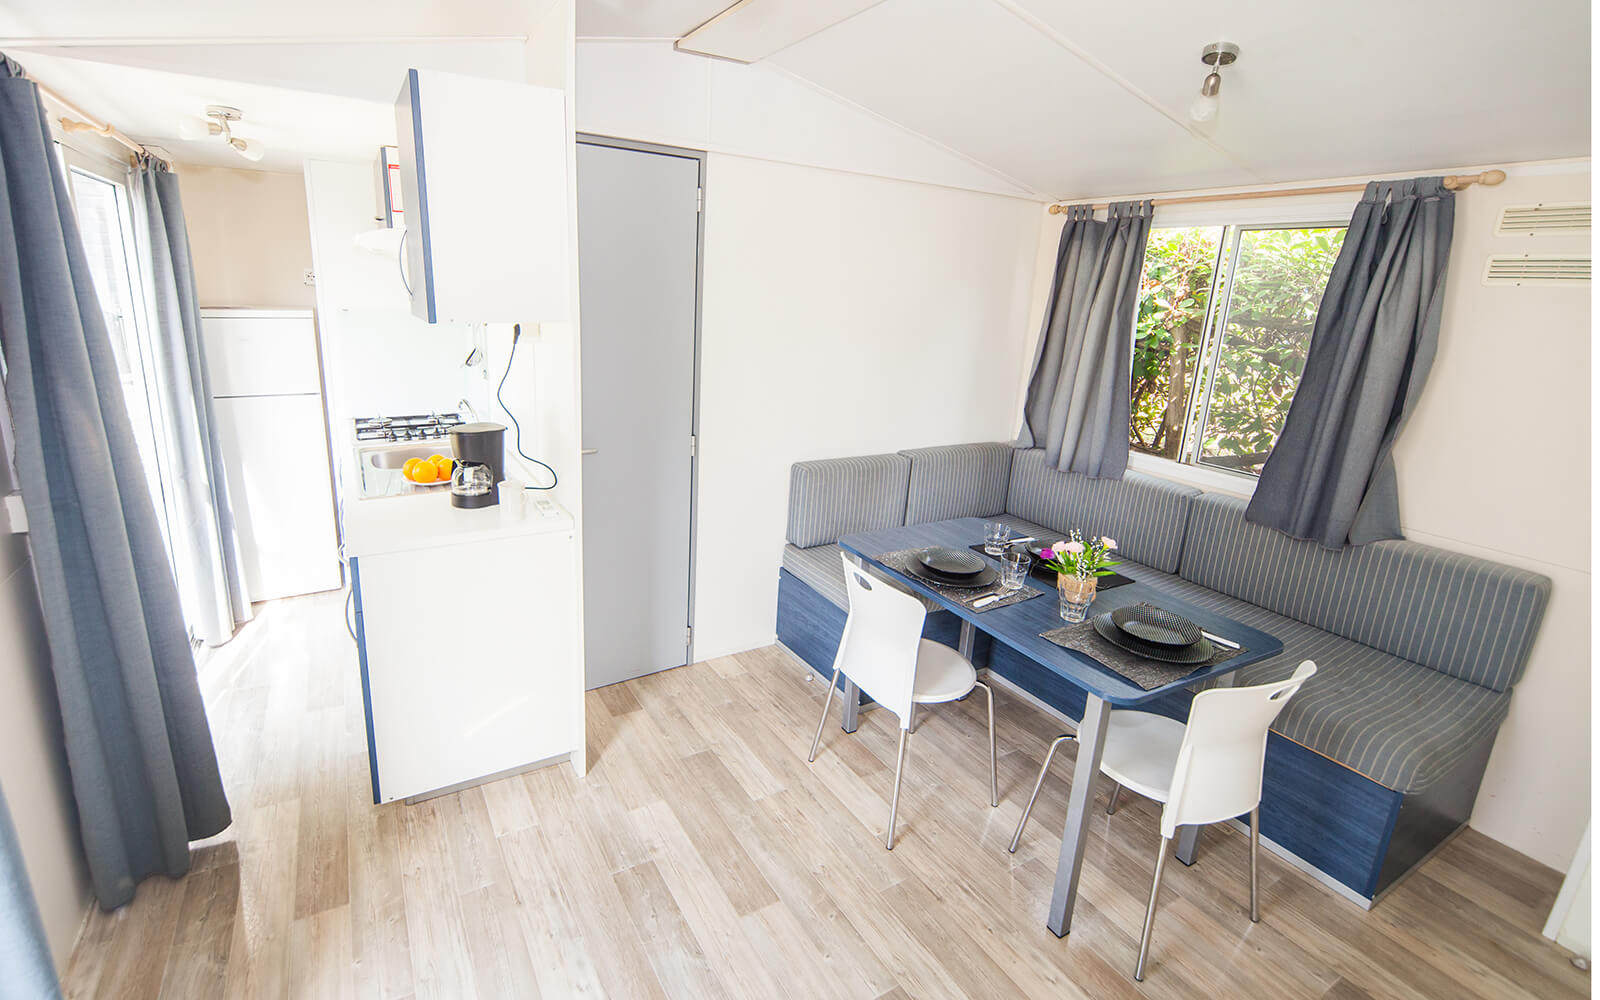 Interior of Comfort mobile home